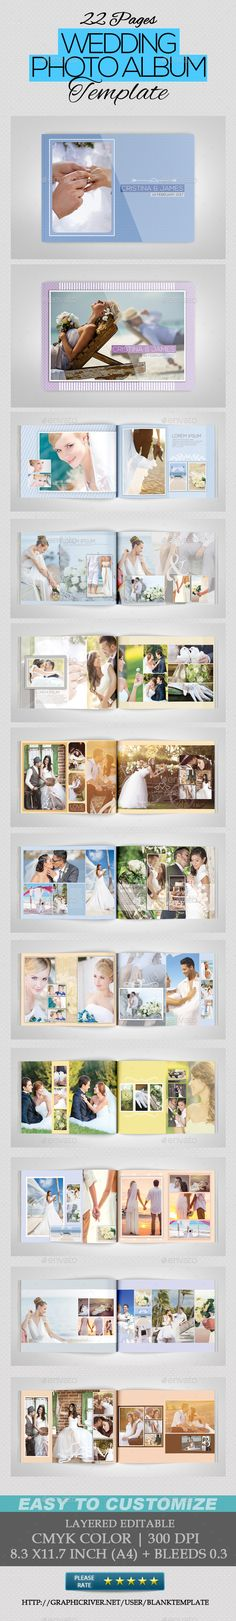 ModernMASTER™ ProPhotographer Album Template Simple Luxury - free album templates